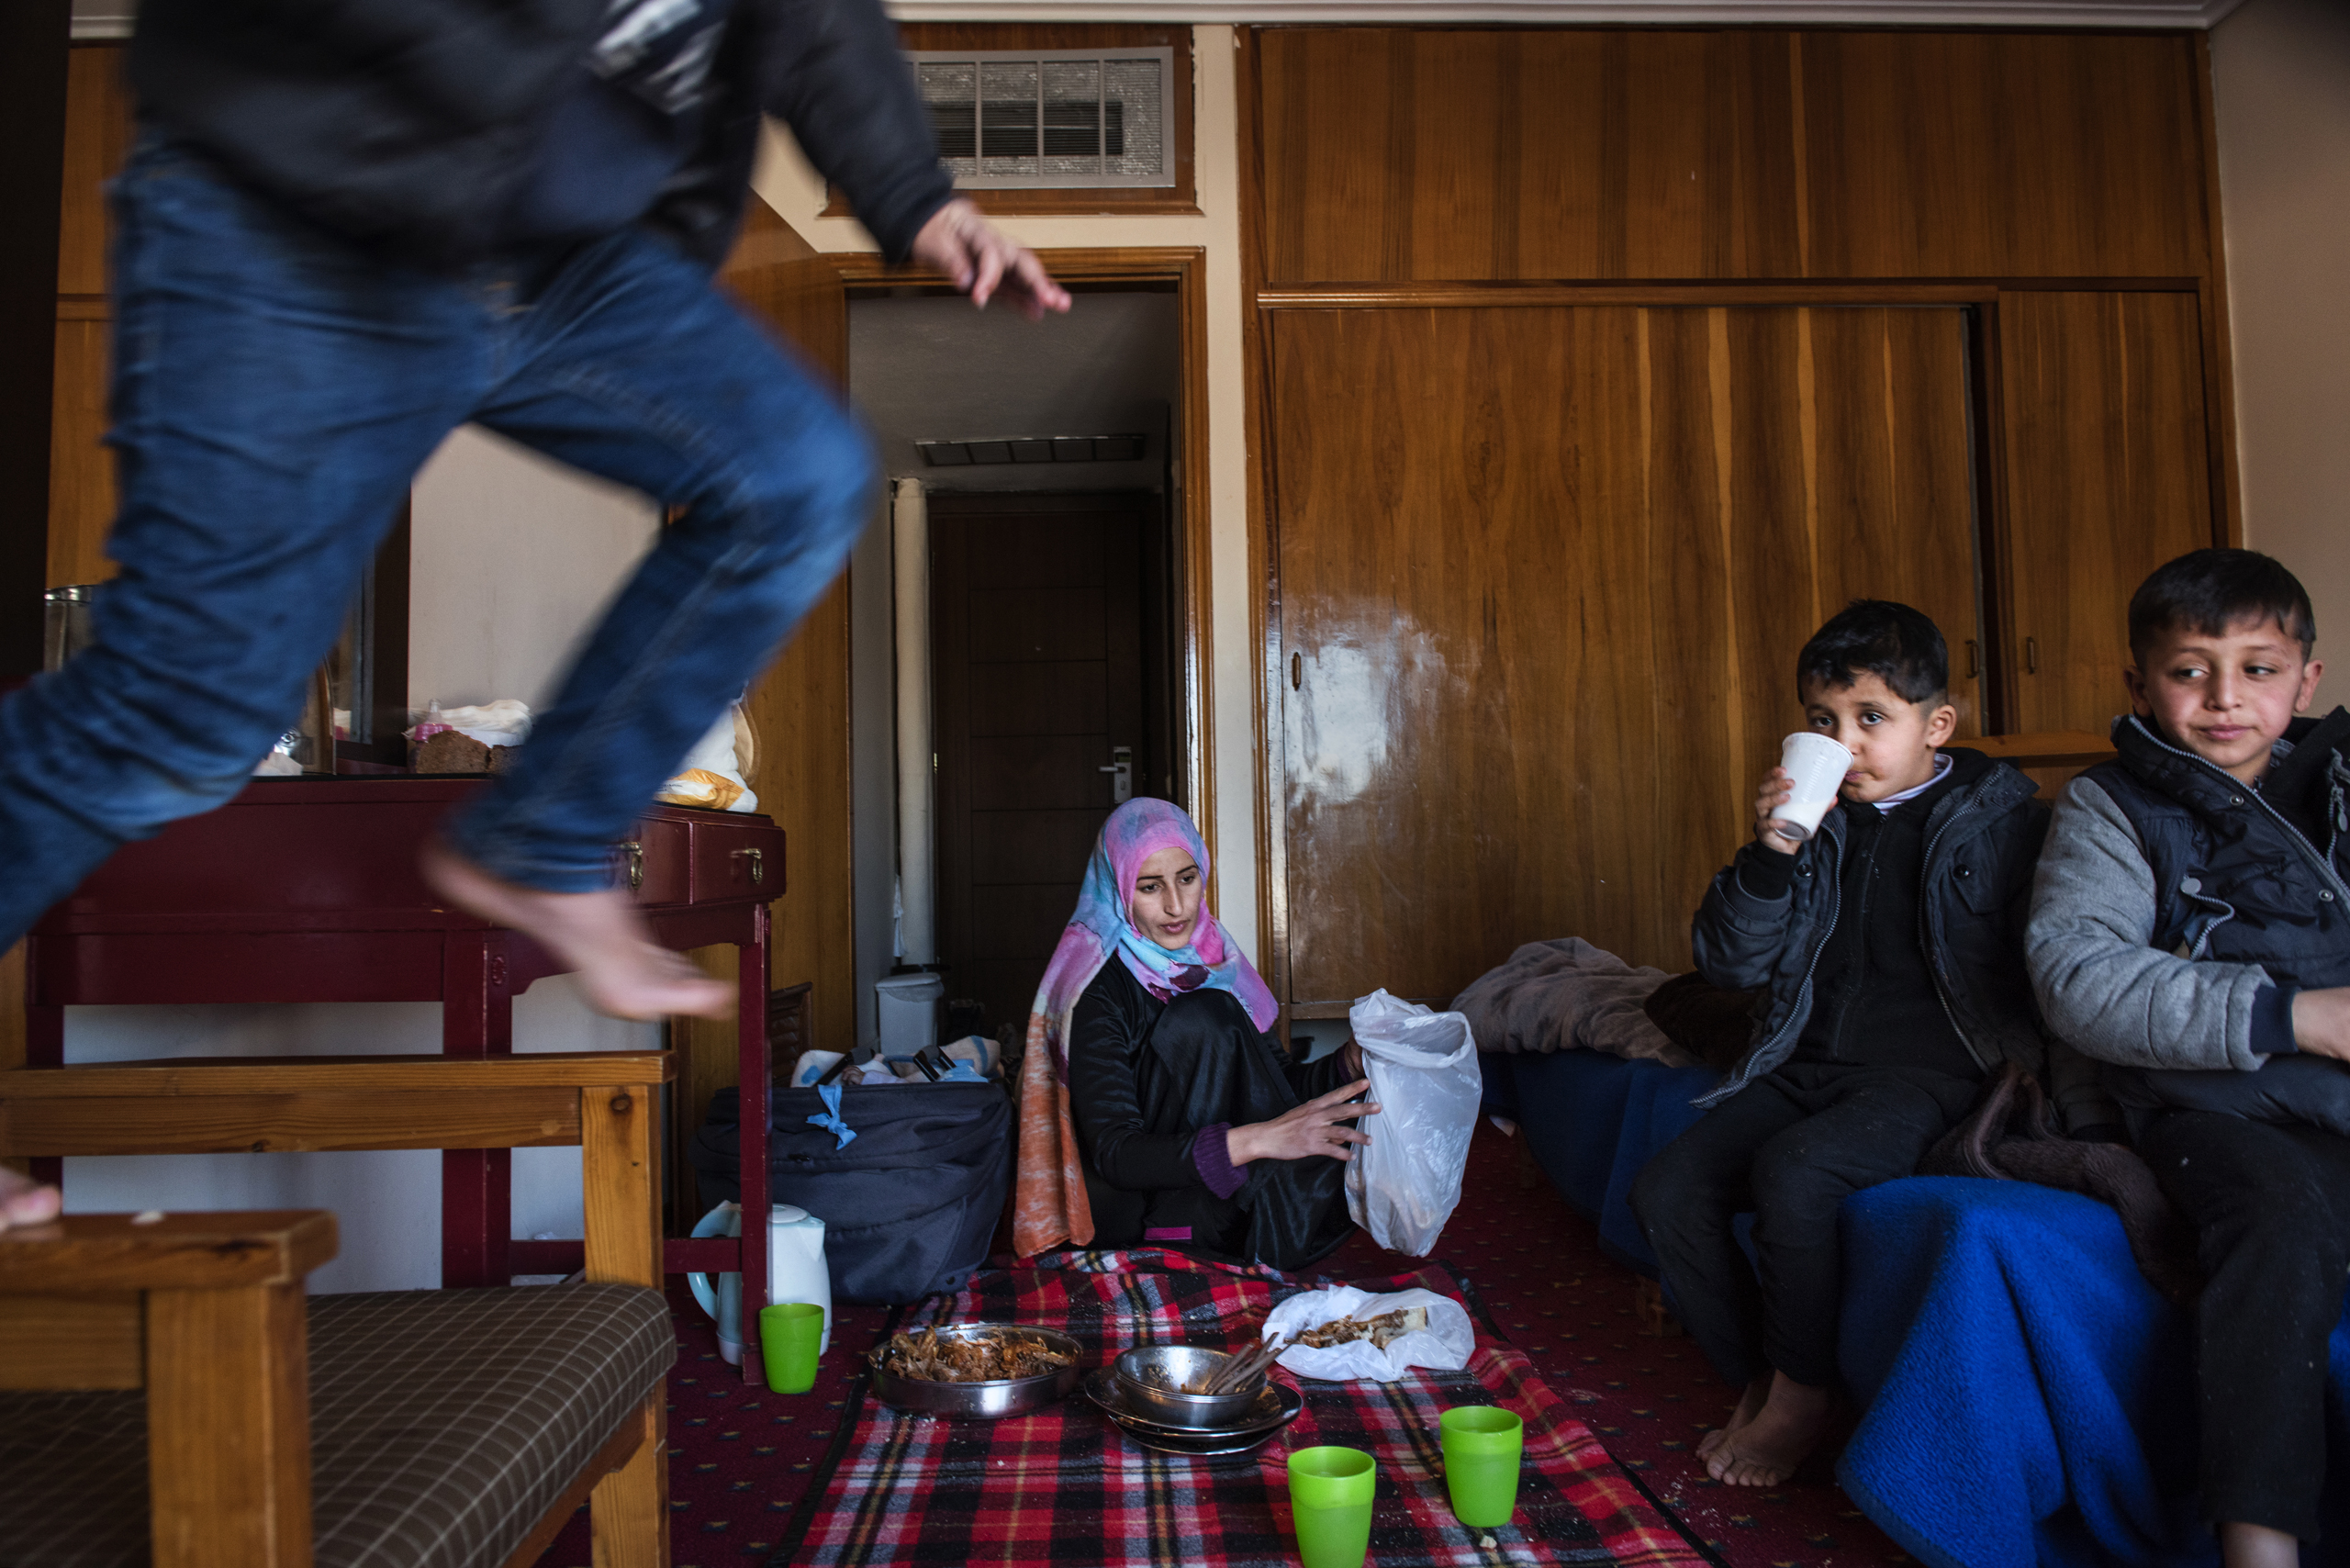 23-year-old Illham Alarabi cleans sits on the floor after eating lunch as her sons play in their hotel room in Kastoria, in Greece near the Albanian border, Jan 14, 2017.   Ilham's fifth son, Faraj, was born on October 2, 2016.  Her days are a whirlwind of cooking, cleaning and childcare with only the barest assistance.